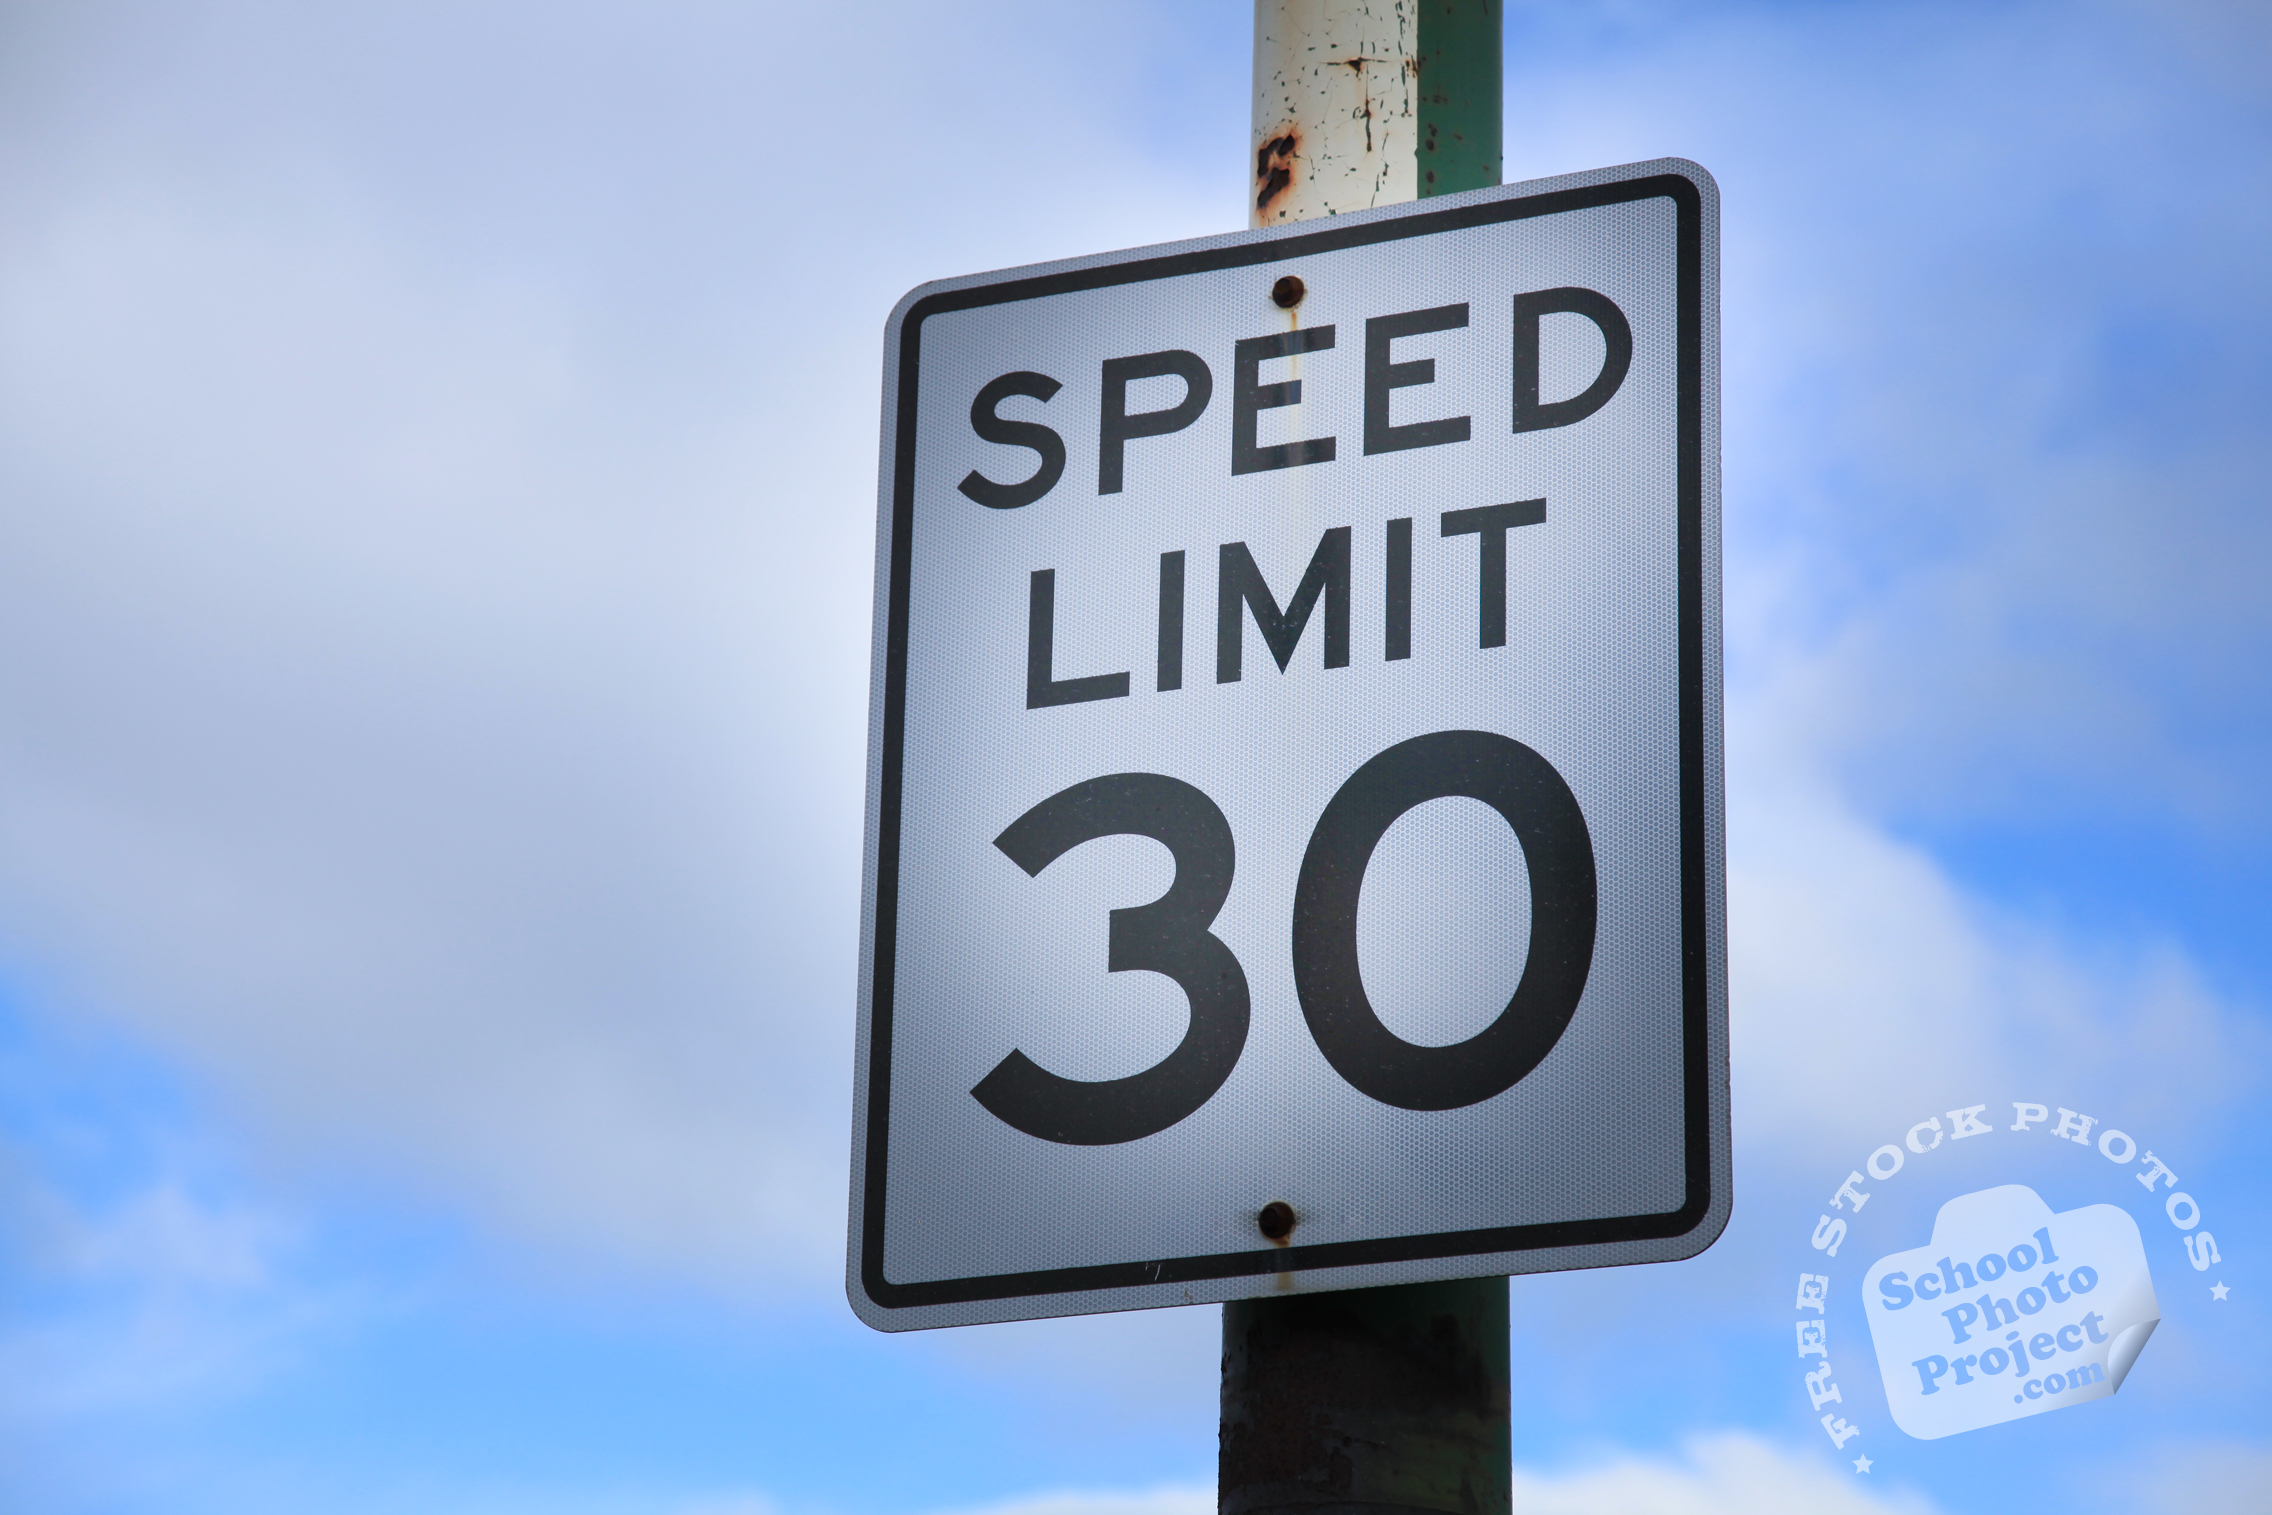 Road Sign, FREE Stock Photo, Image, Picture: Speed Limit